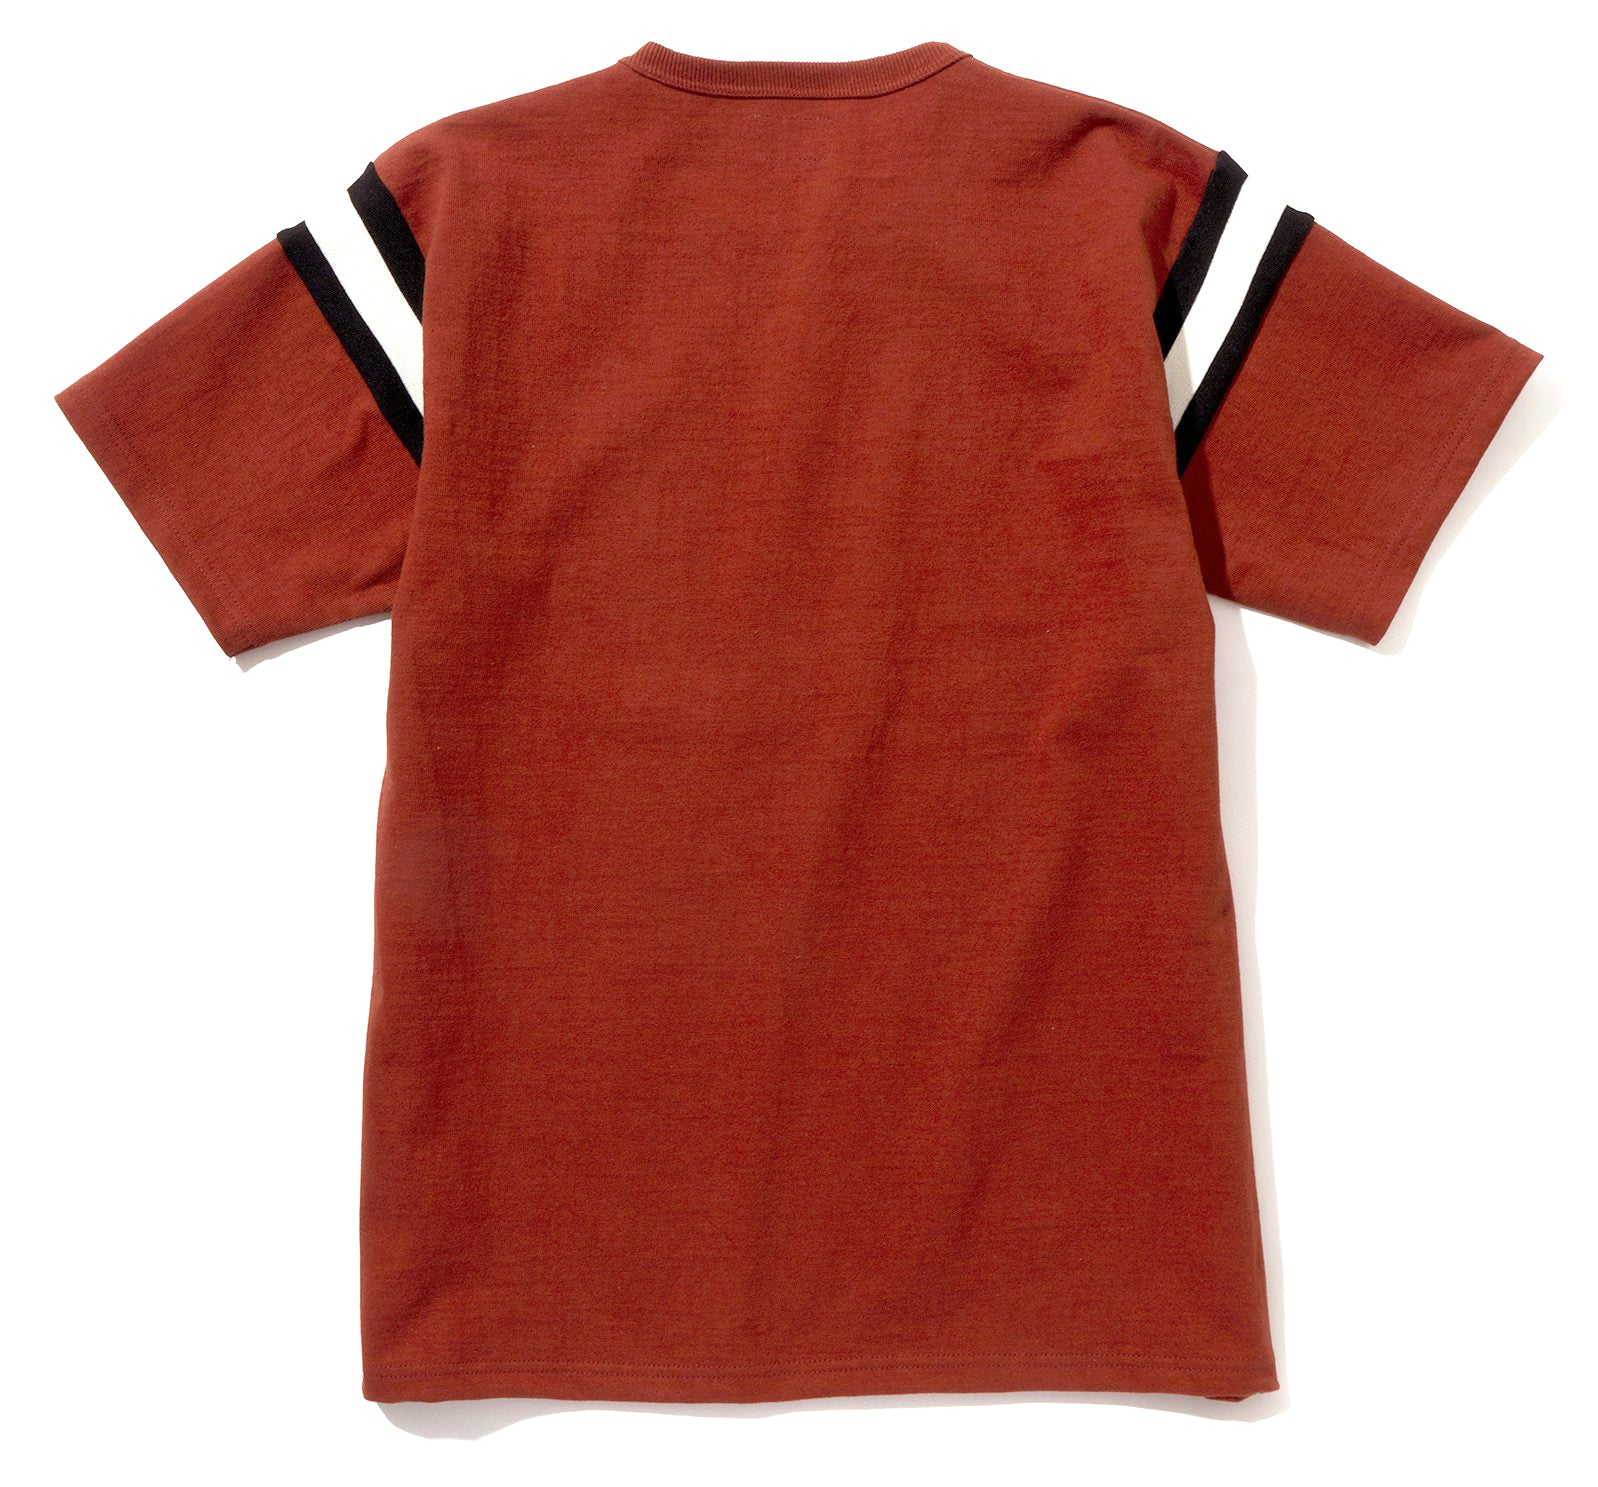 COTTON ATHLETIC JERSEY / GET REALLY STONED